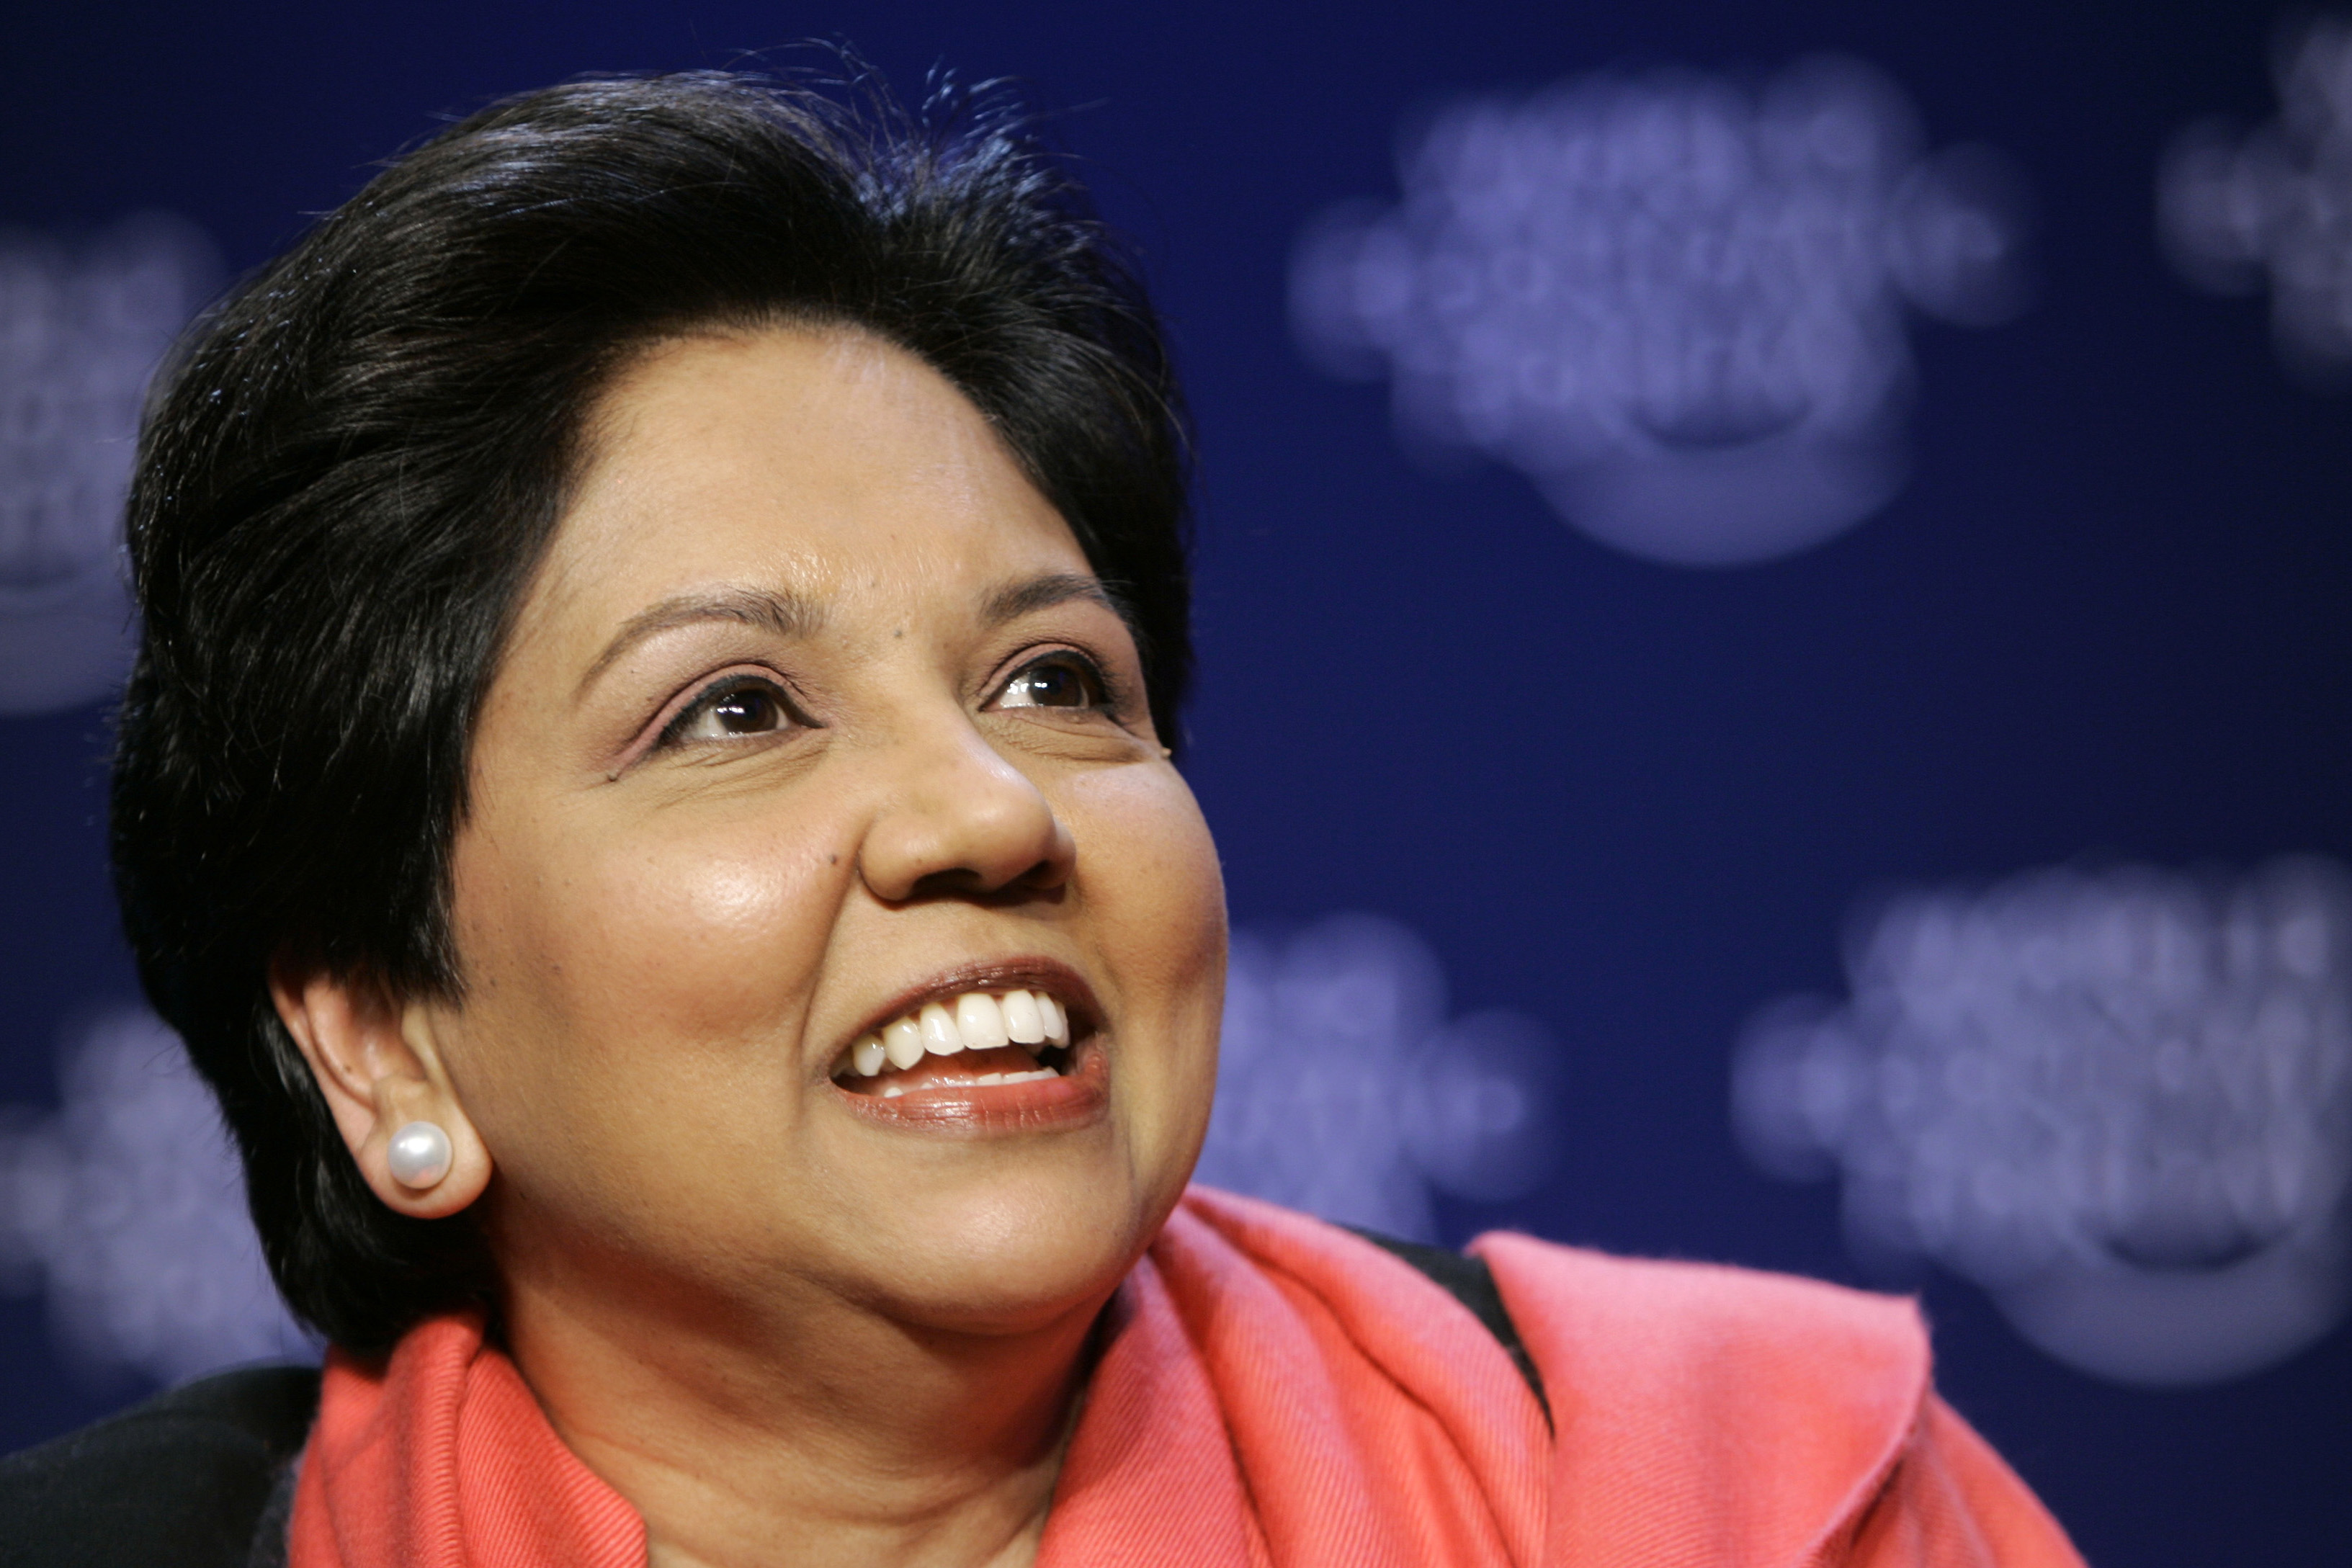 In this Jan. 27, 2008, file photo, Chairman and CEO of PepsiCo, USA, Indra Nooyi smiles during the closing session at the World Economic Forum in Davos, Switzerland. With Nooyi exiting PepsiCo as its longtime chief executive, the circle of CEOs in the S&P 500 is losing one of its highest profile women. Nooyi has been with PepsiCo Inc. for 24 years and held the top job for 12. (Peter Dejong, File/AP)